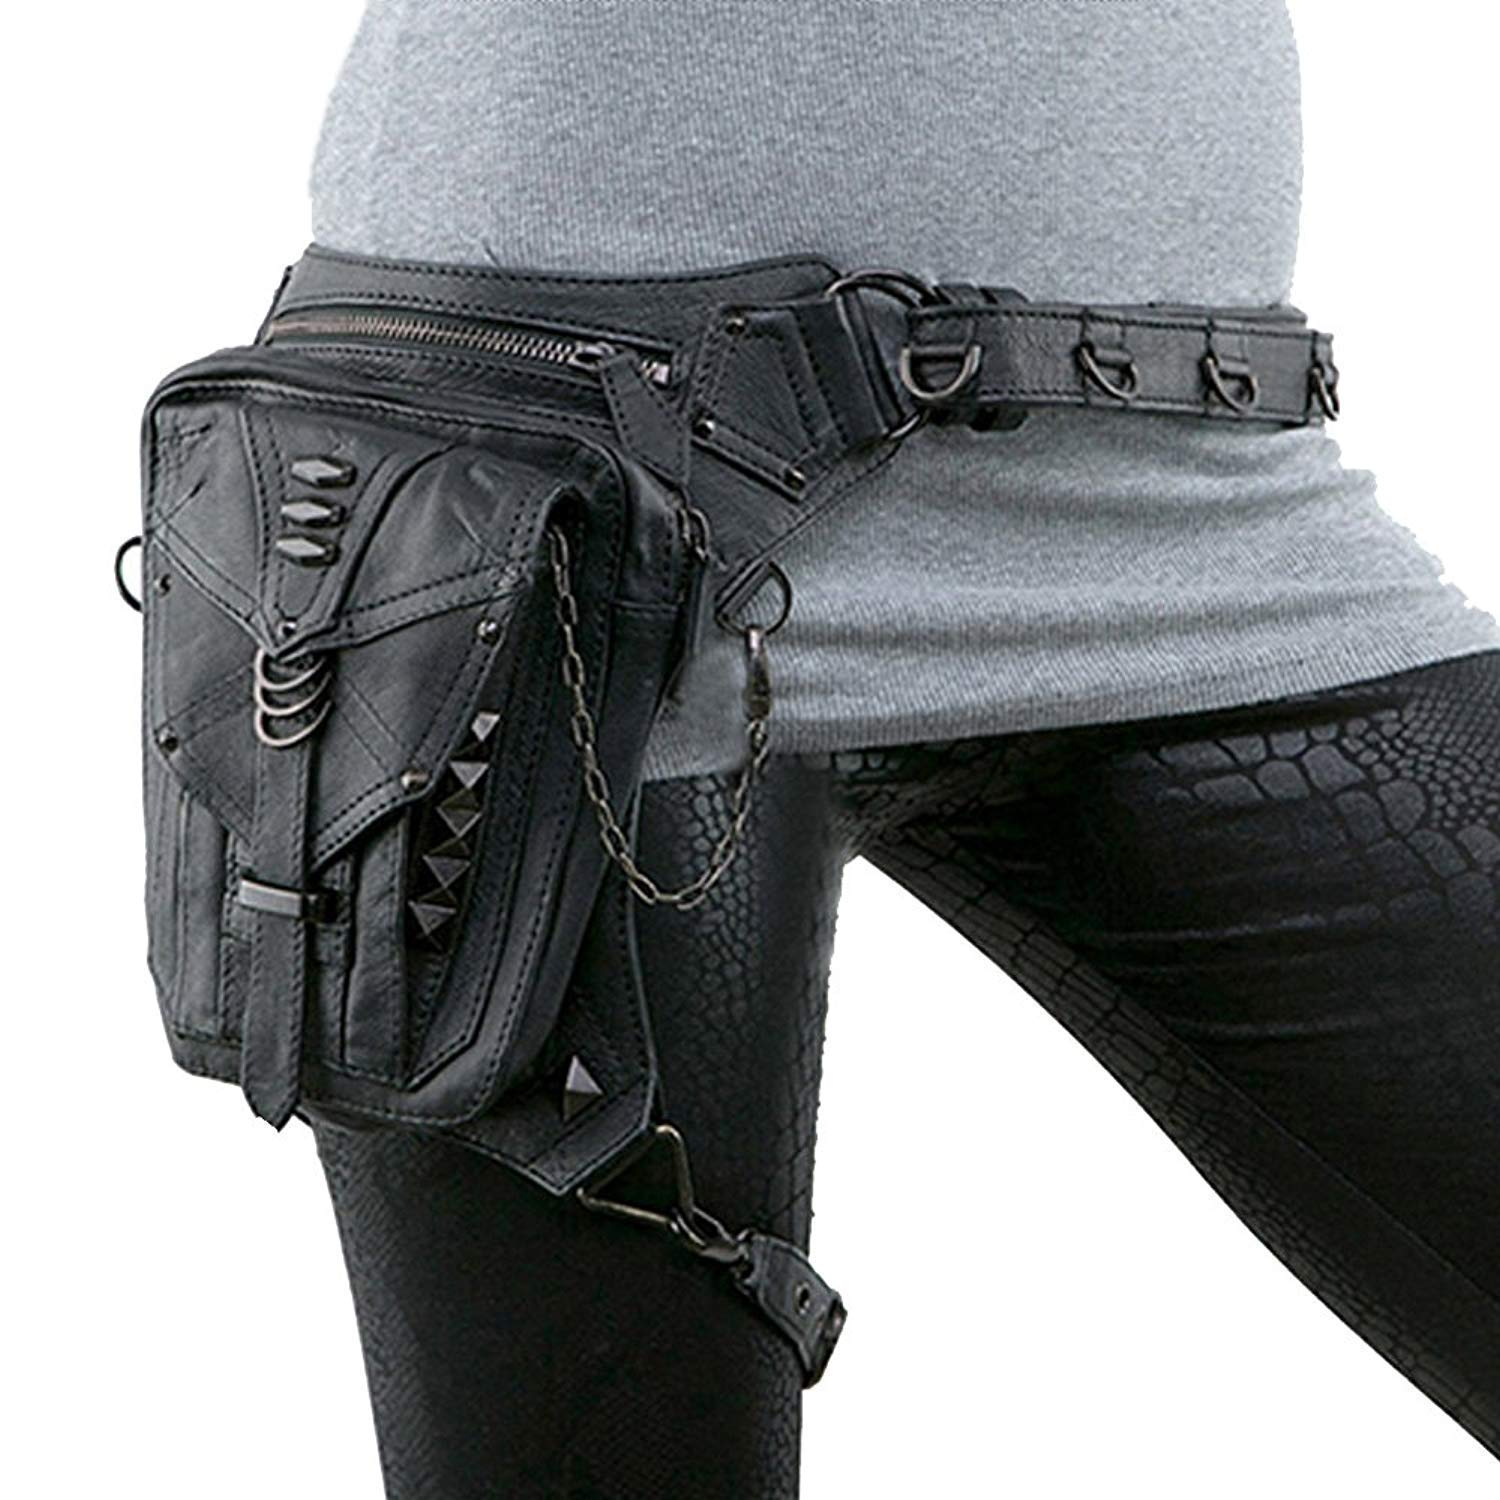 Shoulder Fanny Packs Waist Bags Womens Steampunk Retro Motorcycle Lady Bag Vintage Rock Gothic Shoulder Waist Leg Thigh Holster Bags JIHUO ST-2j